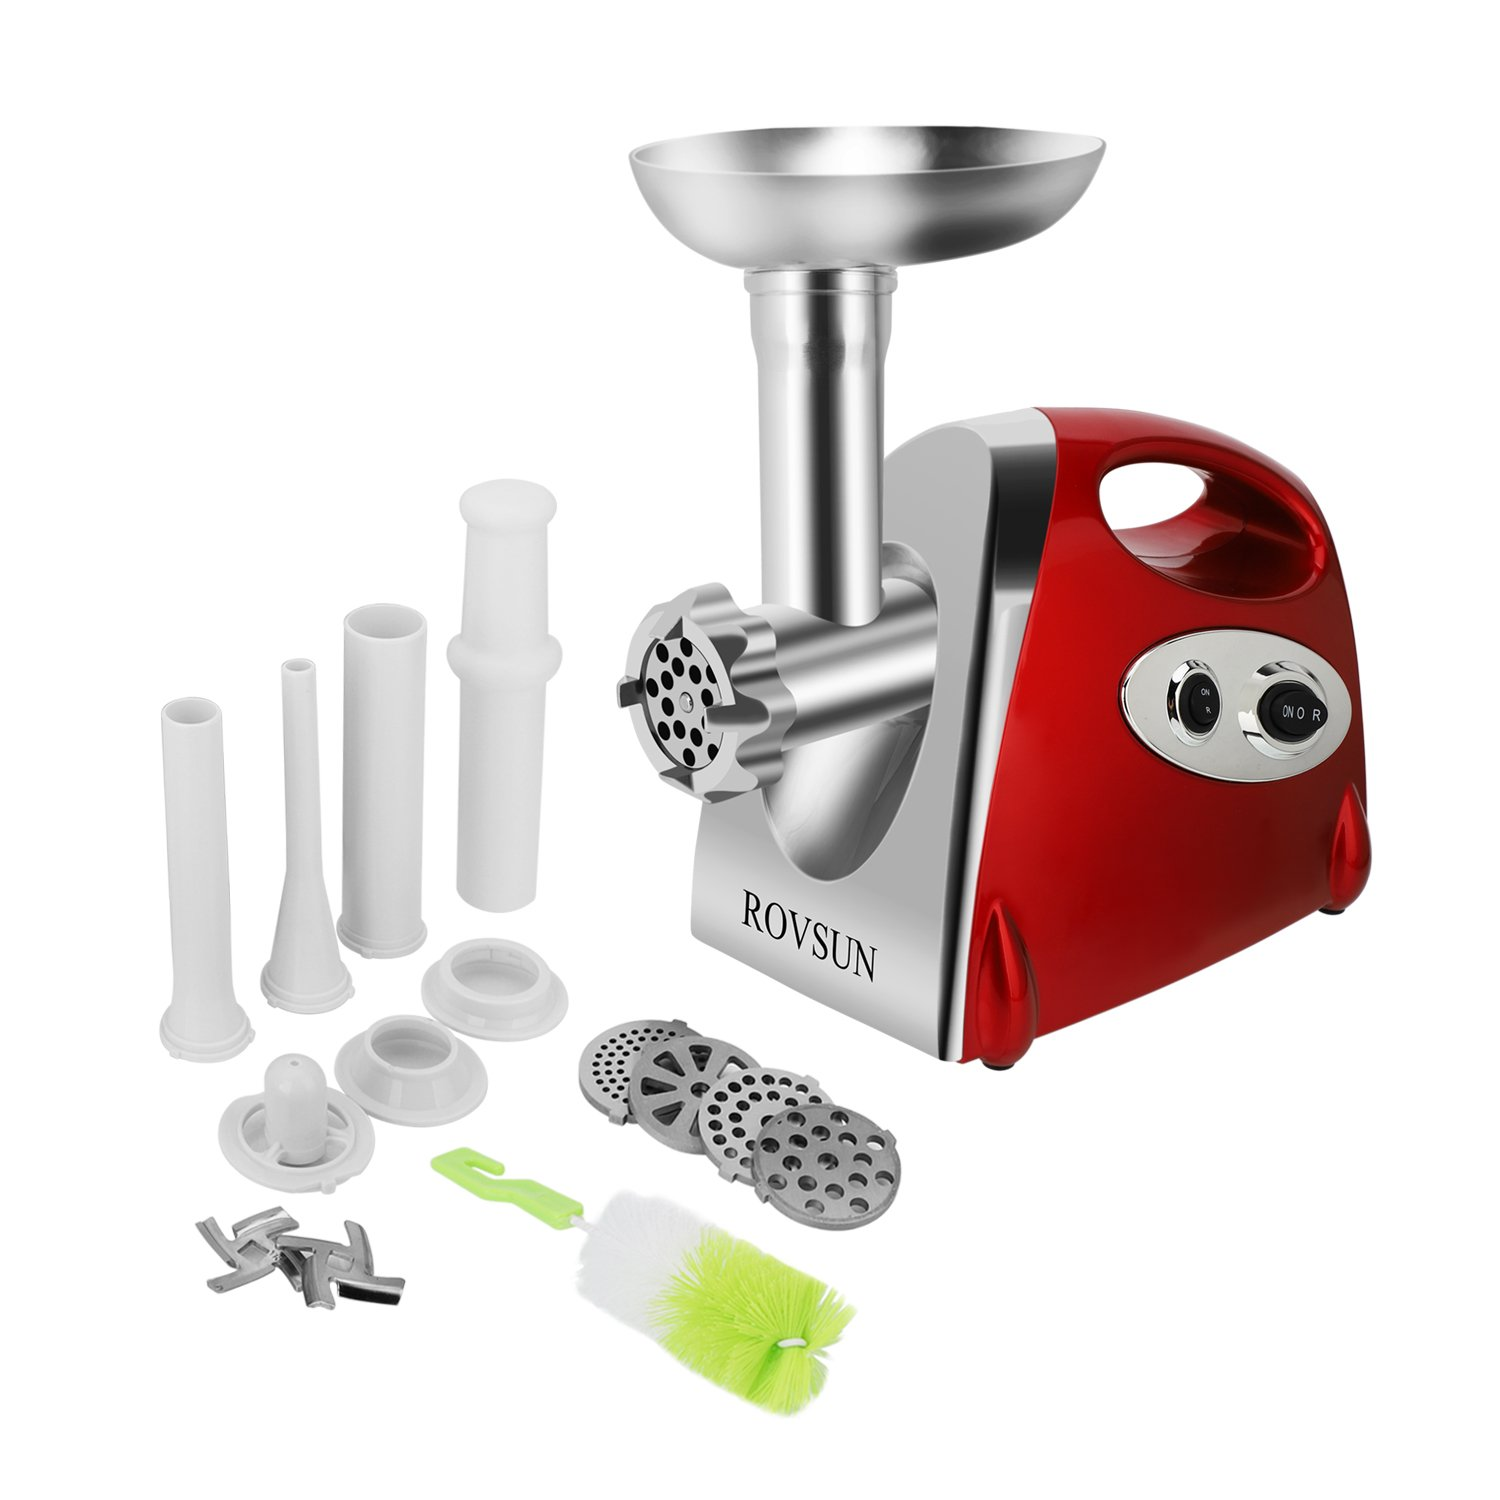 ROVSUN Electric Meat Grinder, 800W Stainless Steel Mincer Sausage Stuffer, Heavy Duty Food Processor with 4 Grinding Plates - 3 Sausage Tubes - 2 Blades - Kubbe Attachment & Brush, ETL Approved